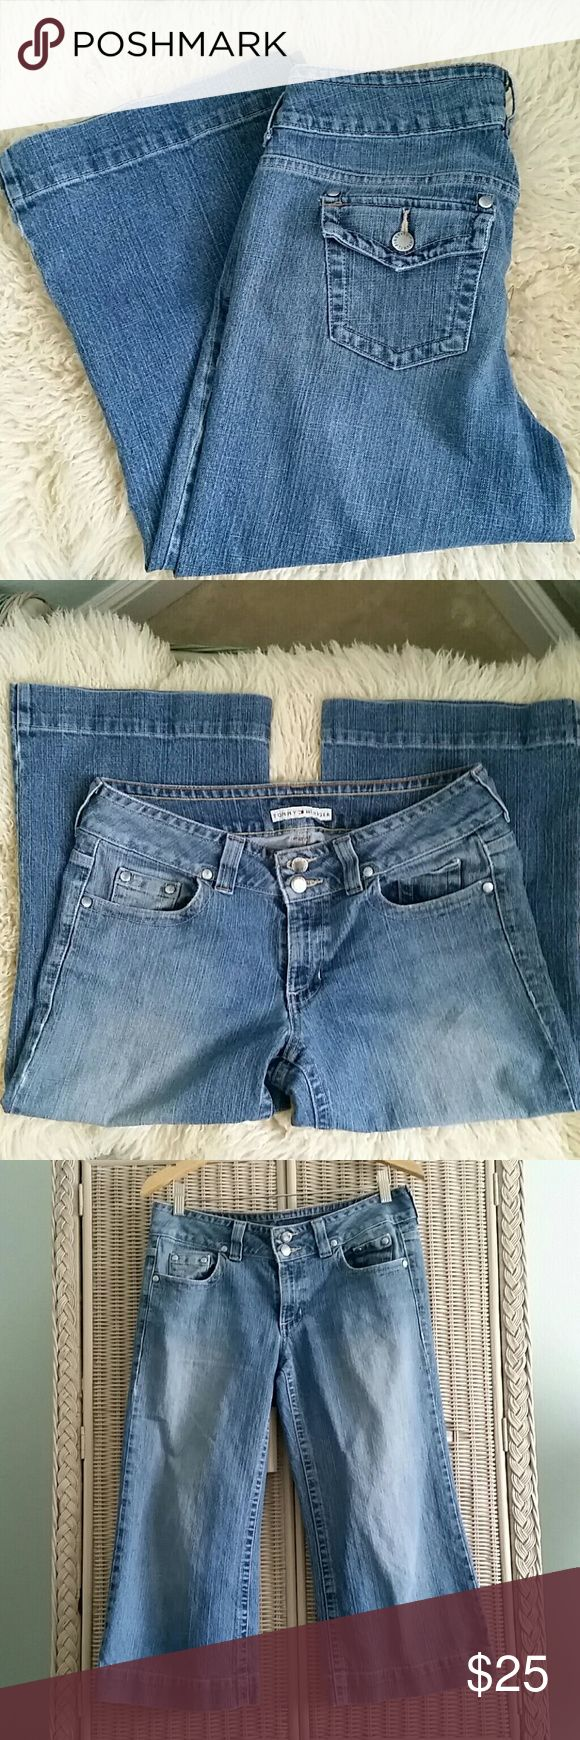 Tommy Hilfiger women's cropped jeans Gently worn women's cropped jeans with a cute wide flared leg that comes mid-calf and sits below the waist. Measures 34 1/2  around the waist.  Super relaxed fit and oh so comfortable to wear. Tommy Hilfiger Jeans Ankle & Cropped